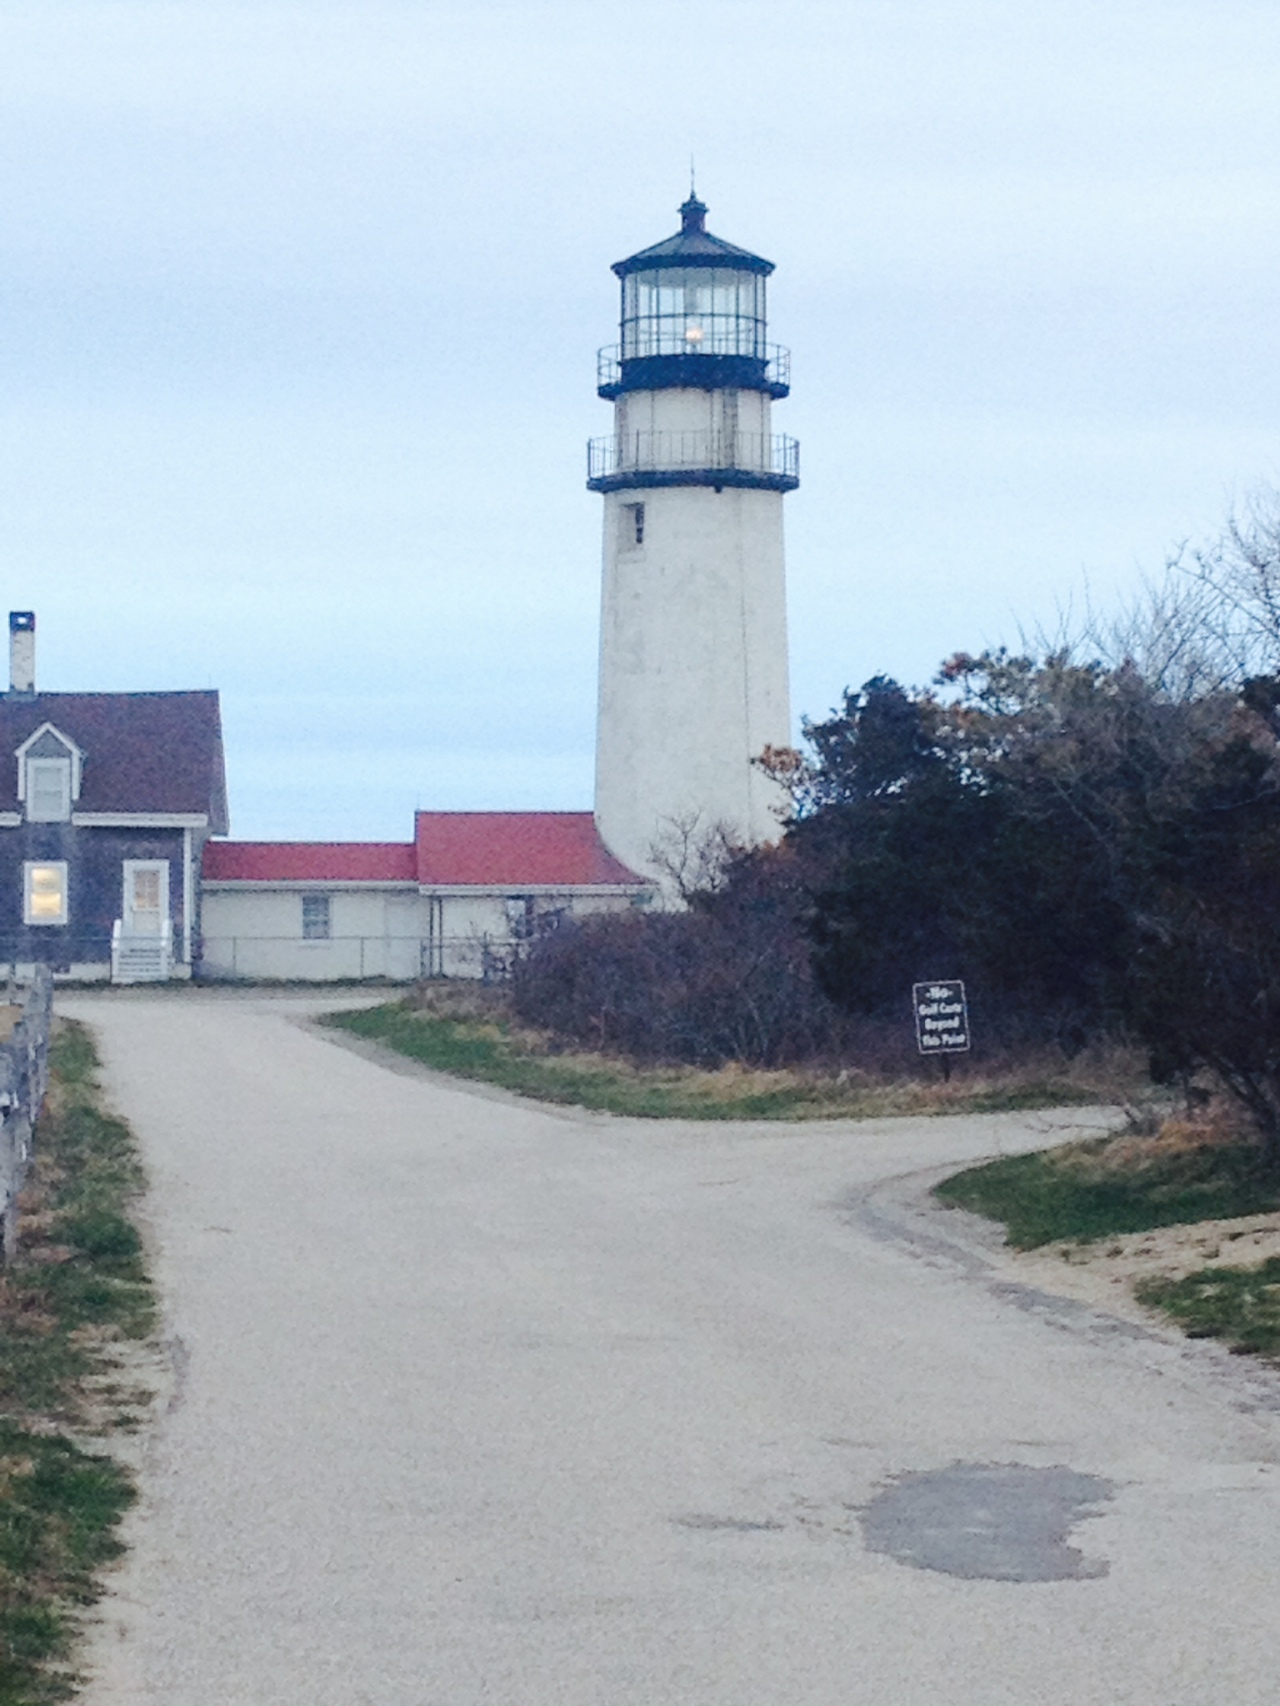 Philipe's lighthouse. Calling the holy father home. Prayers & offerings. photo by Hillary Raimo 4/28/14